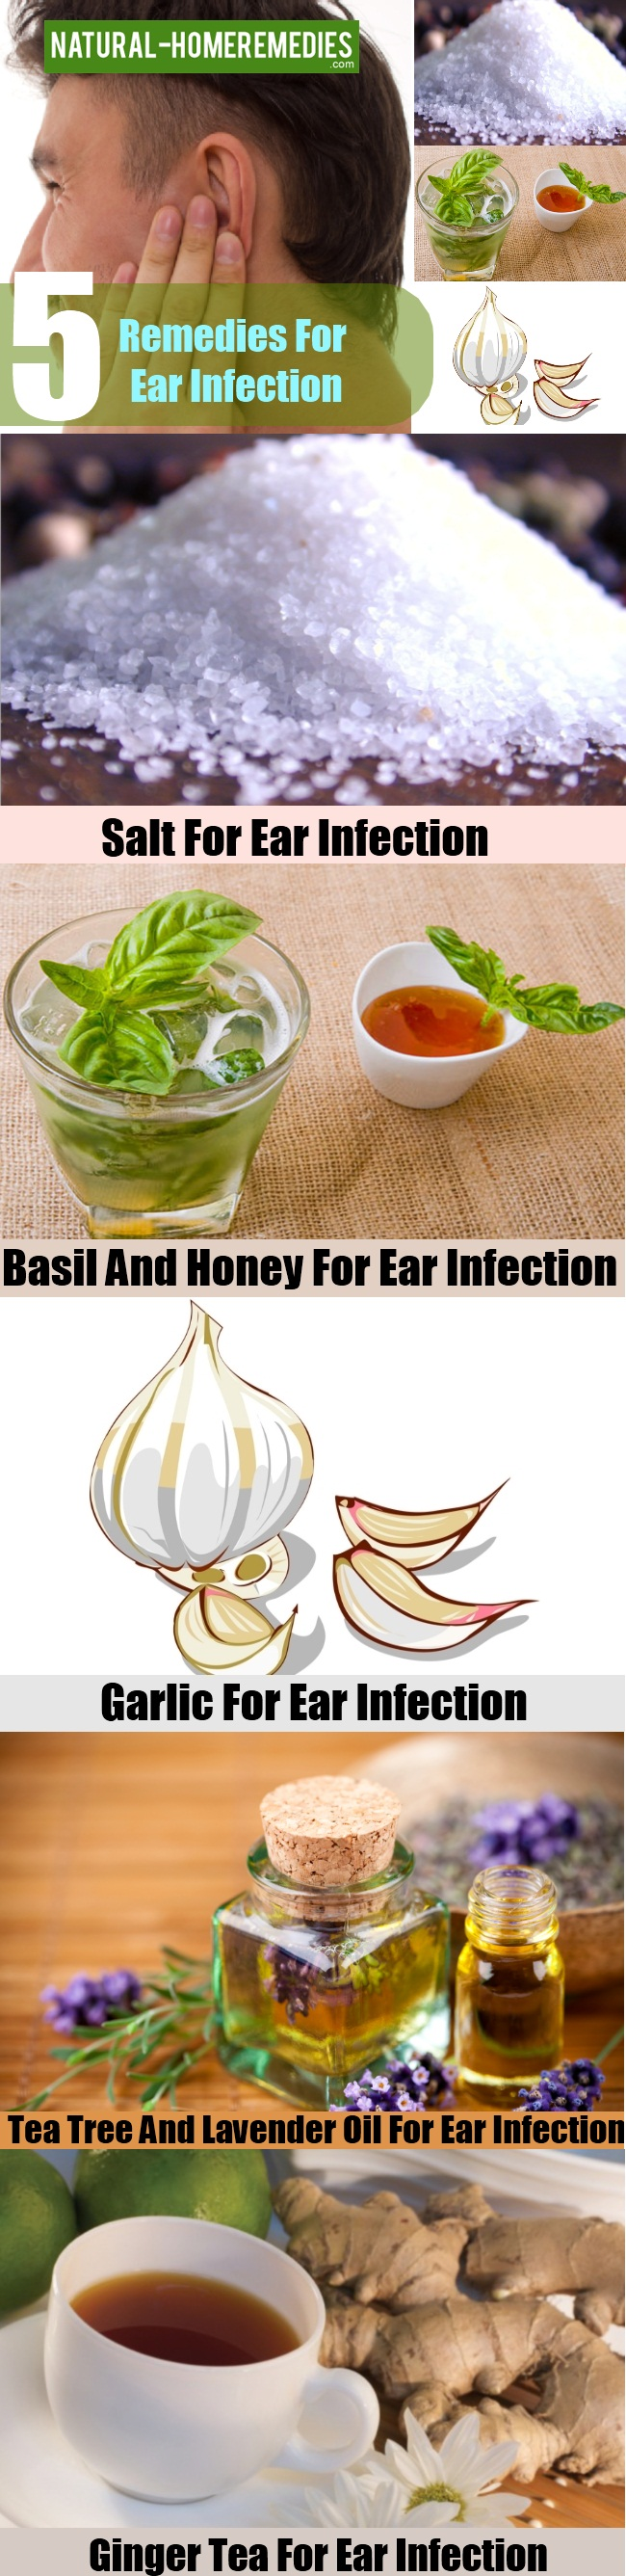 Remedies For Ear Infection